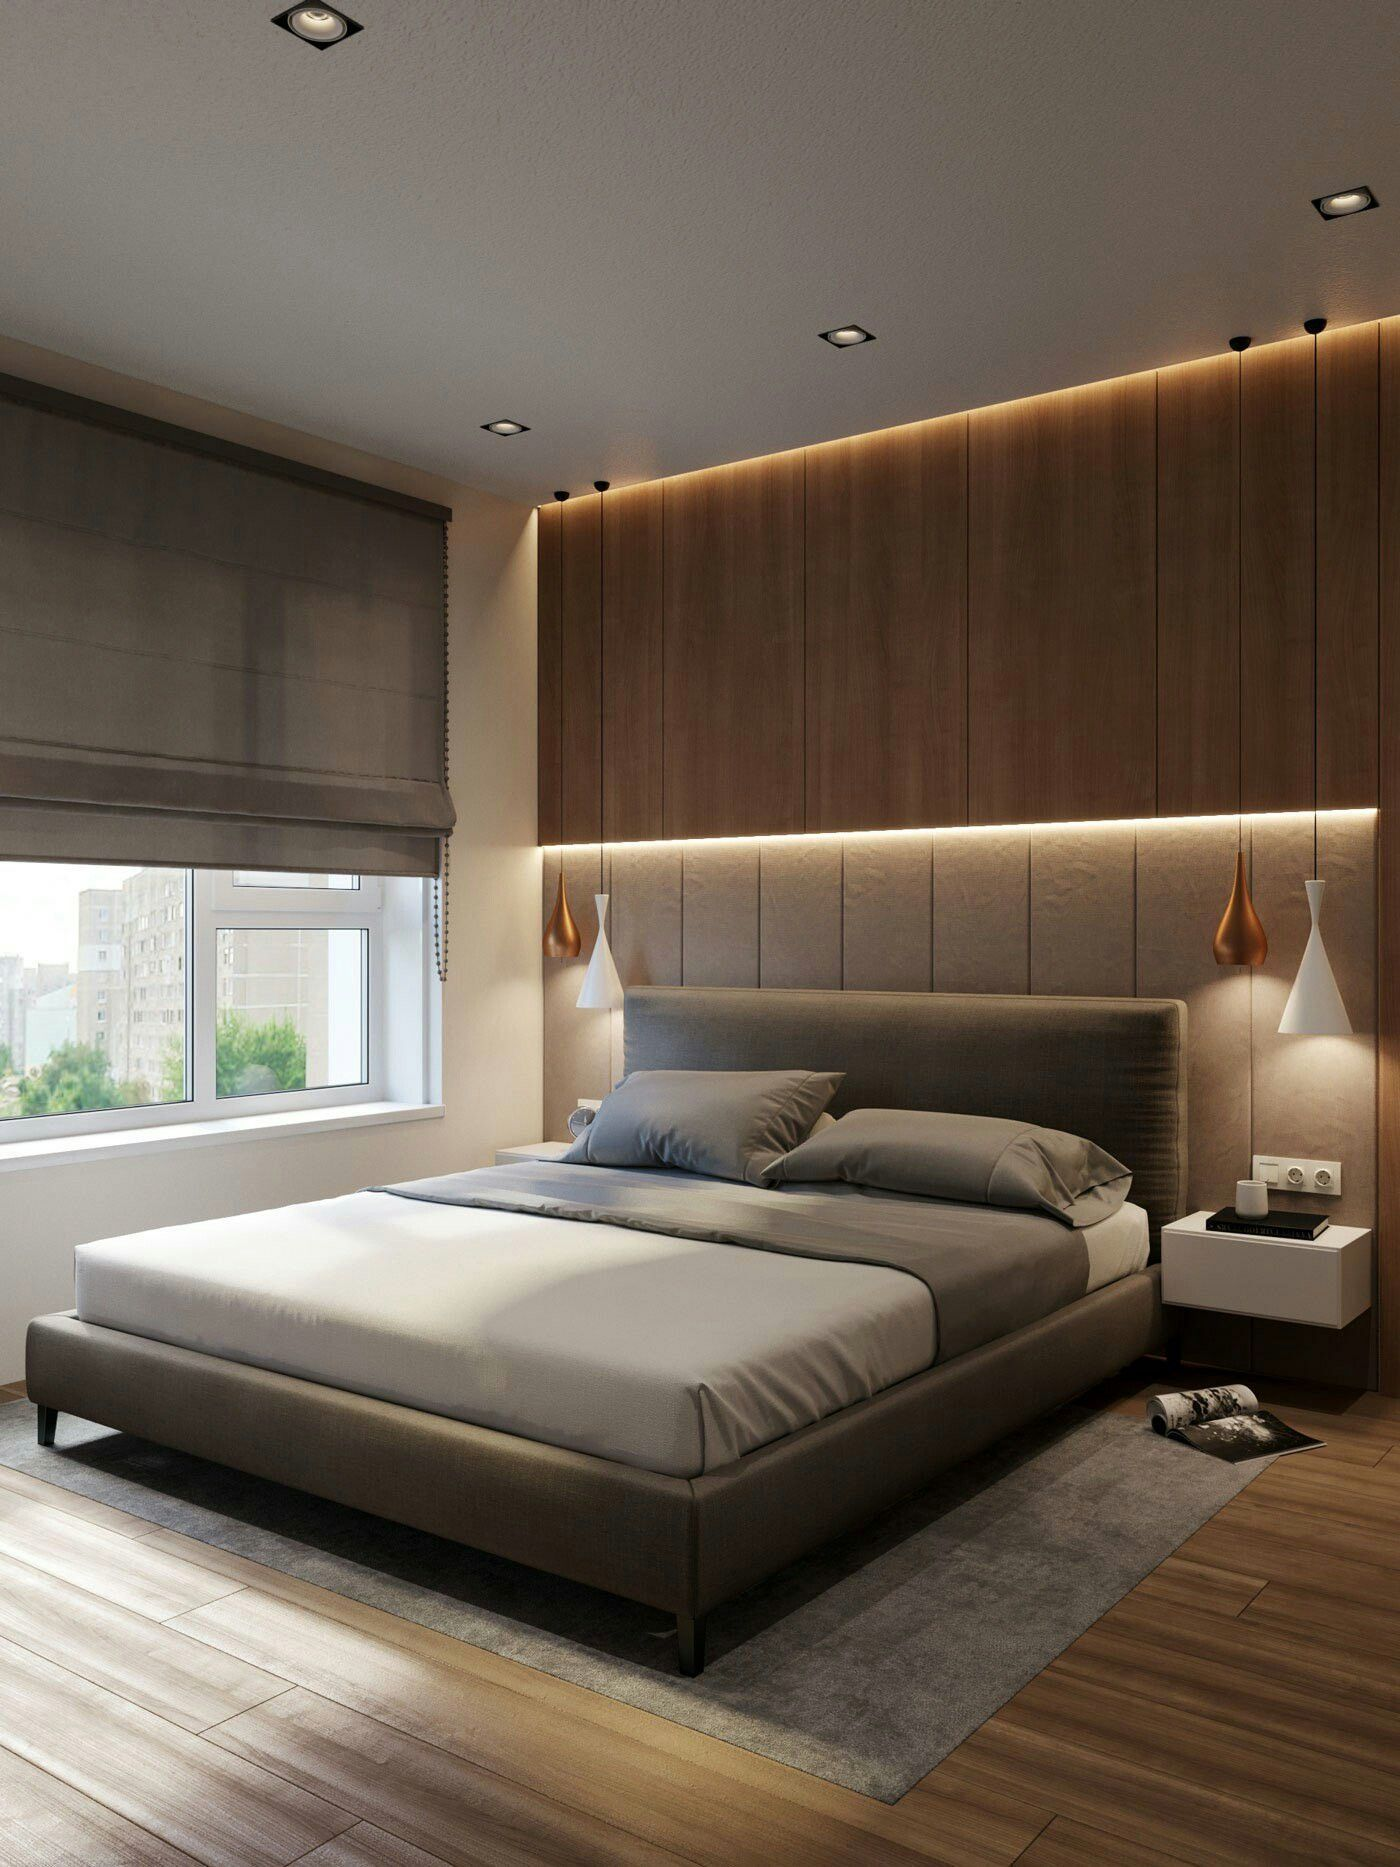 Dark Bedroom Ideas All The Bedroom Design Ideas You Ll Ever Need Find Your Design As Well As Creat Bedroom Bed Design Bed Design Modern Bed Furniture Design